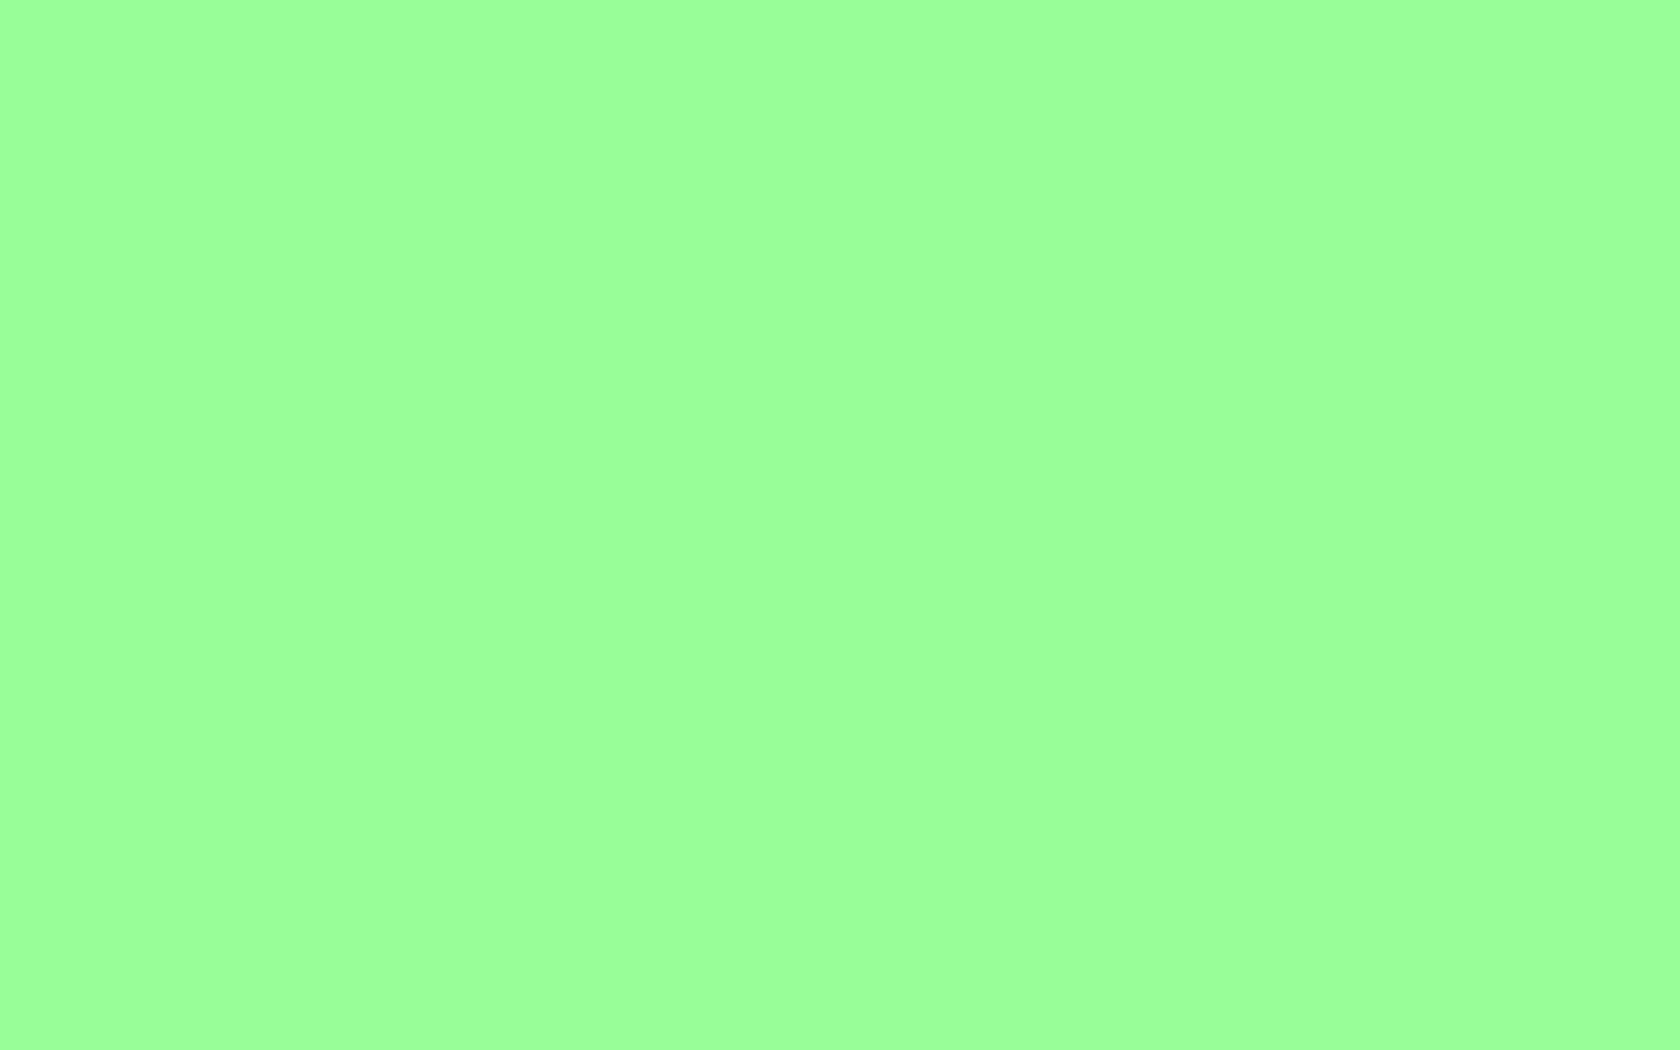 1680x1050 Mint Green Solid Color Background